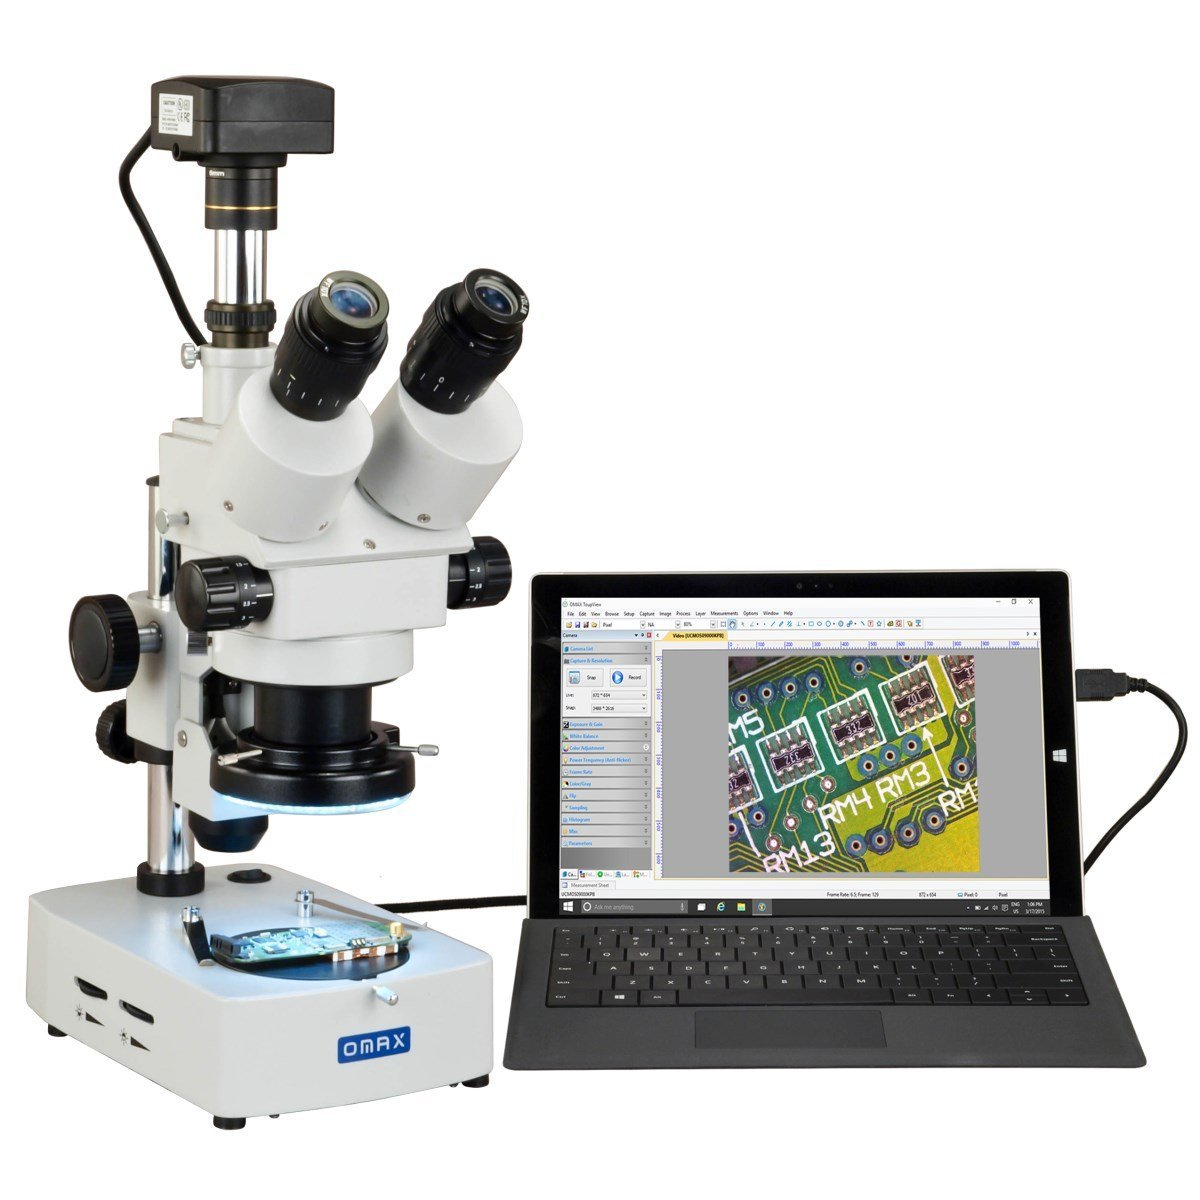 OMAX 3.5X-90X USB3 18MP Digital Trinocular Zoom Stereo Microscope   Desk Stand with 144-LED Light